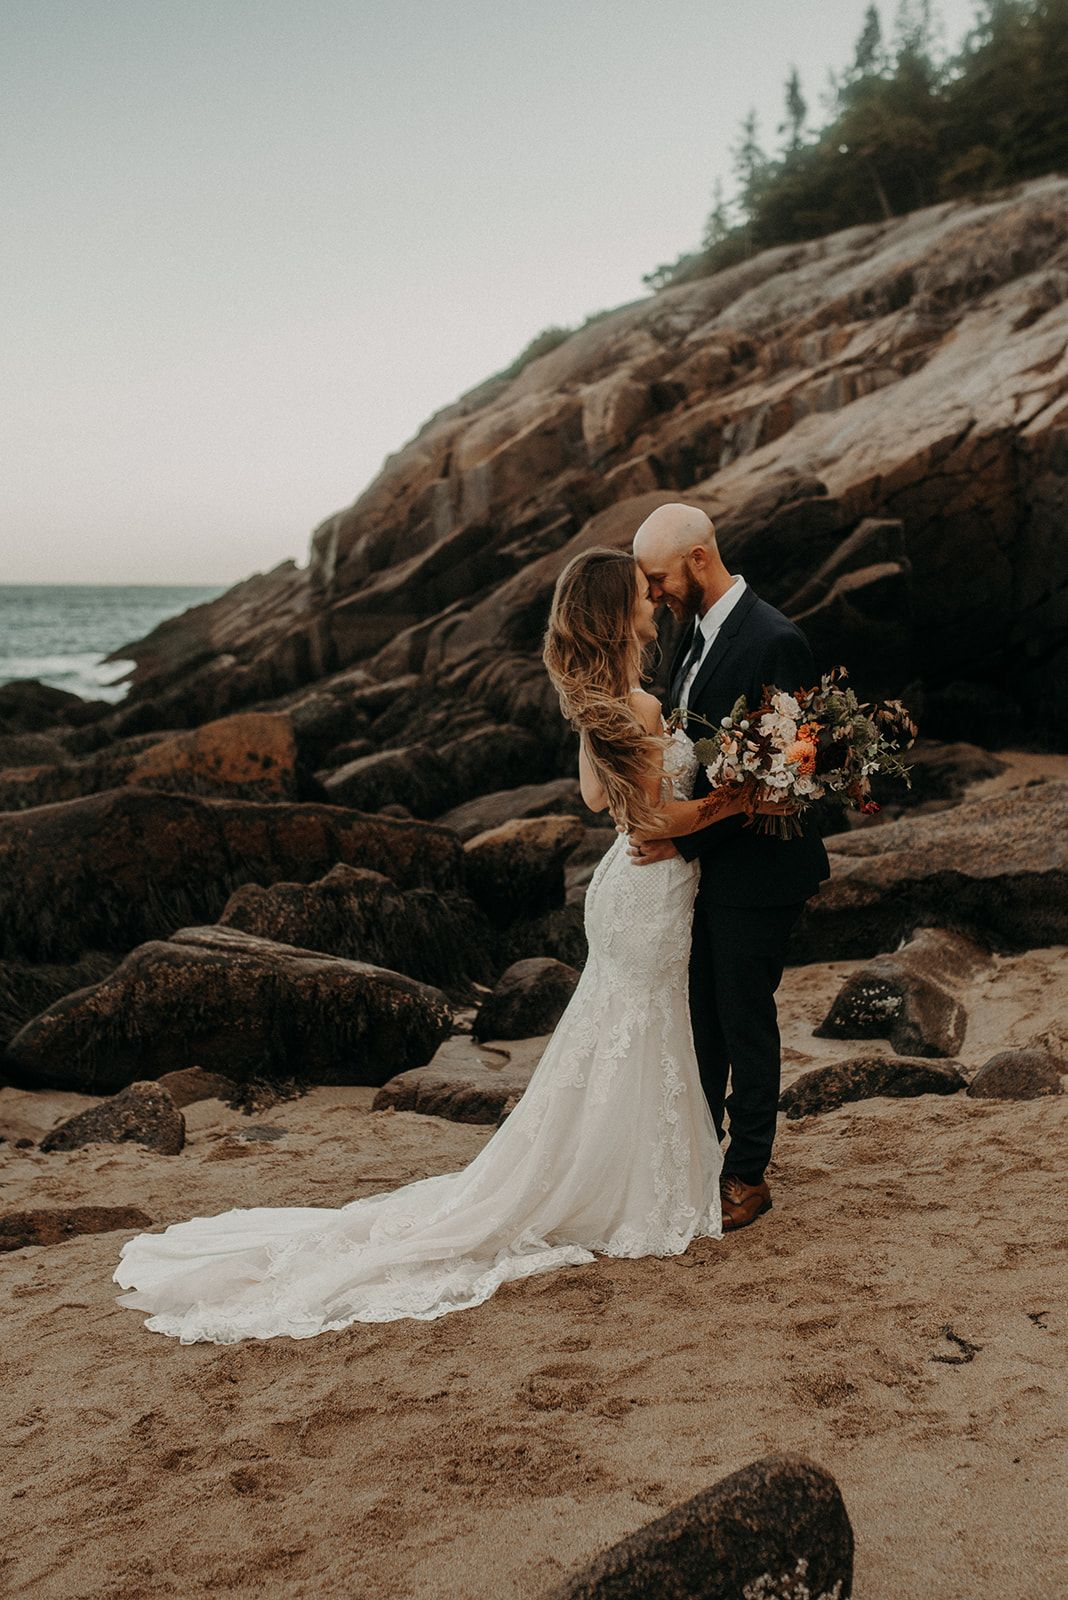 A beautiful Maine elopement in Acadia National Park. Boho Bride with wildflower bouquet. Keep your wedding intimate and COVID-free with our Maine Elopement Collective Packages. Click to read more! #mainewedding #elopement